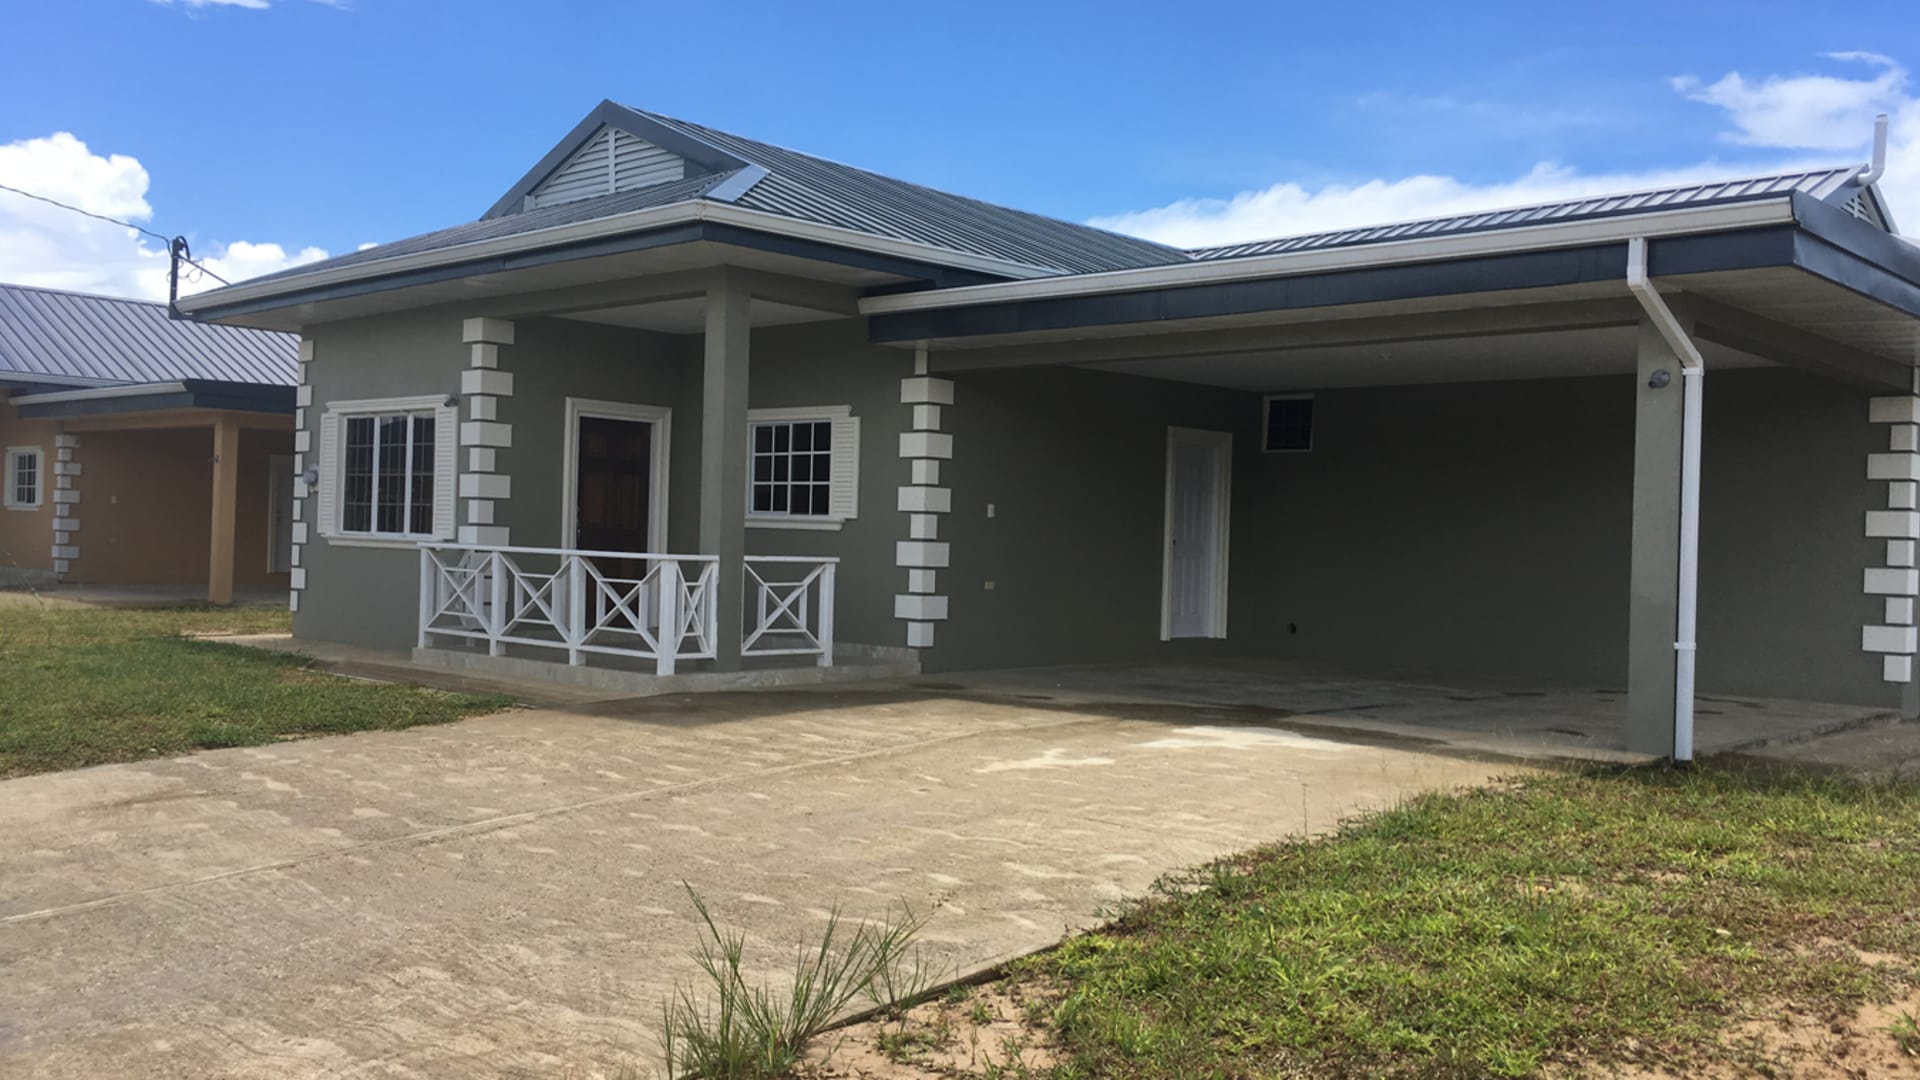 Cost of house plans in trinidad and tobago for Trinidad house plans